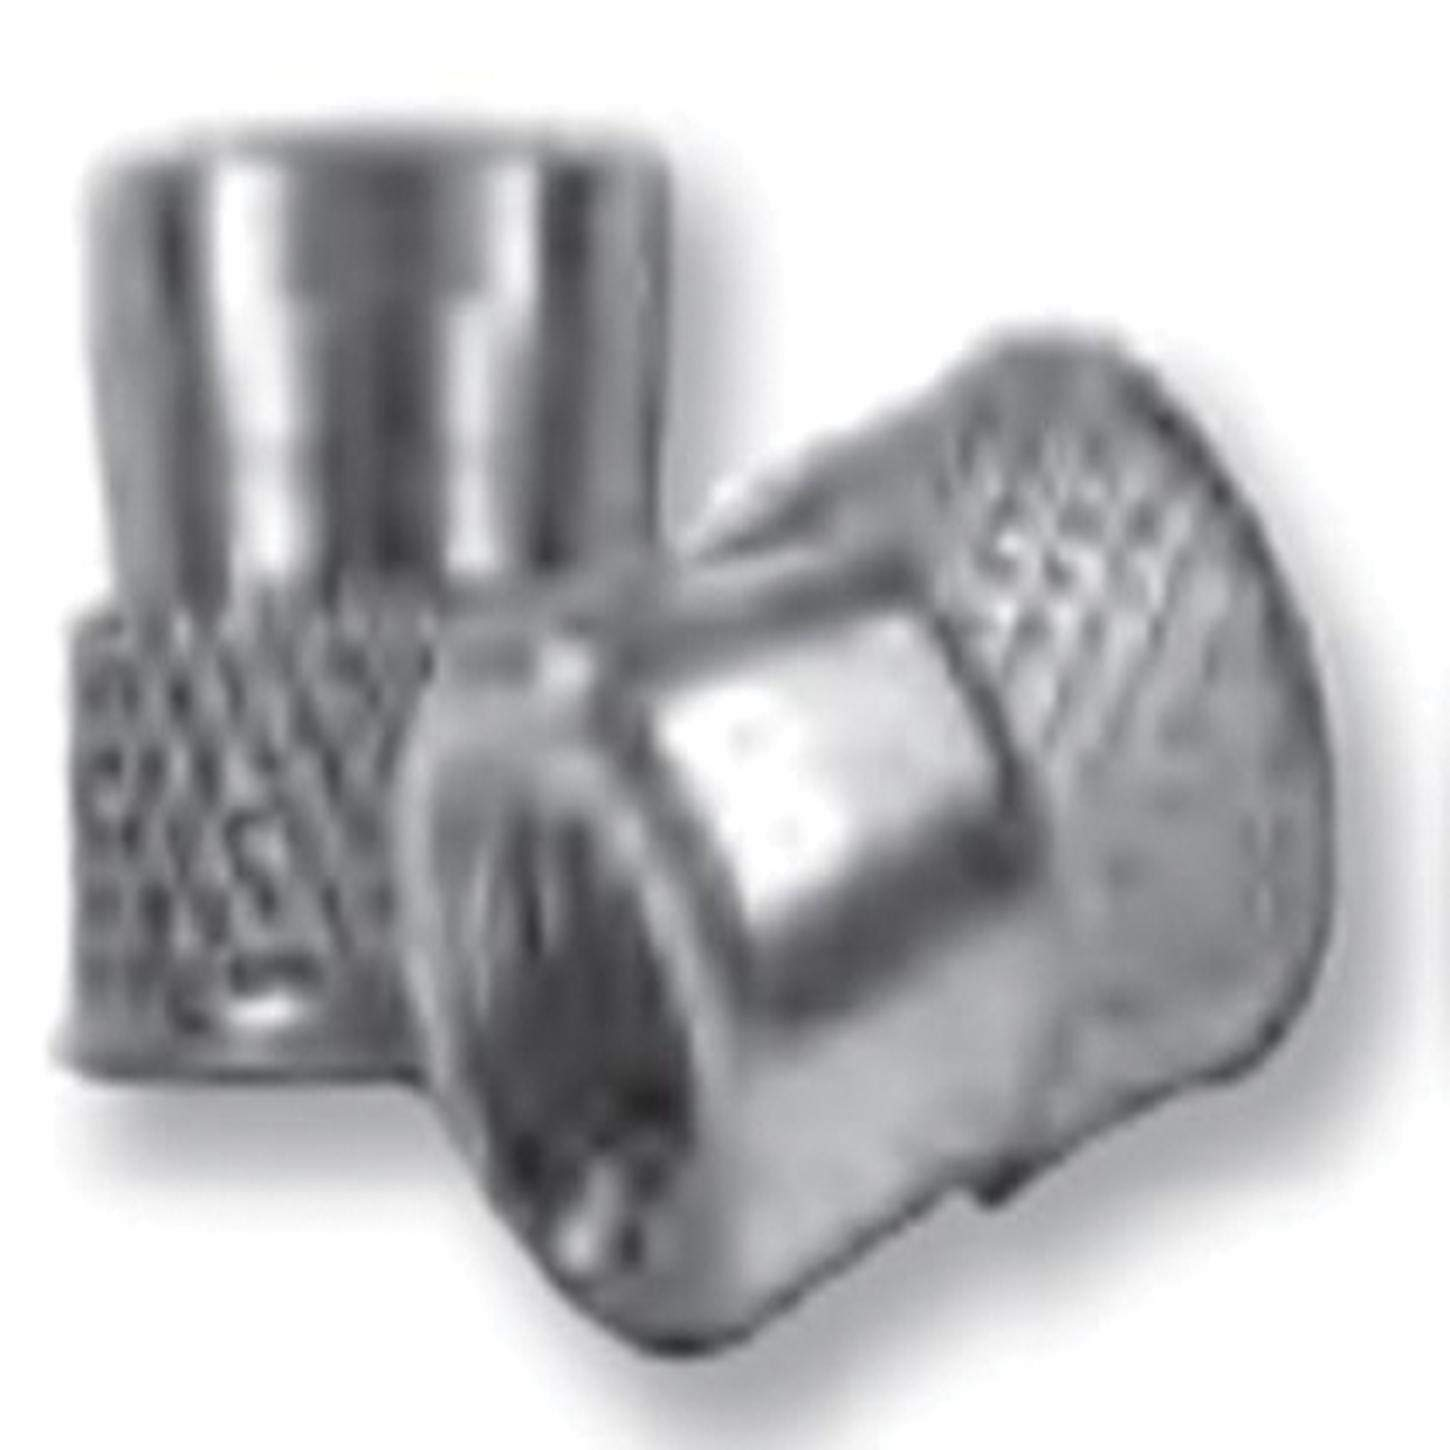 CFW2-0632, Nutsert Insert, 6-32, Material Thickness (.062-Up) RND Nutsert (Diamond Knurled) Low PRO HD, Steel, Tin CLR by CFW/CAW Series